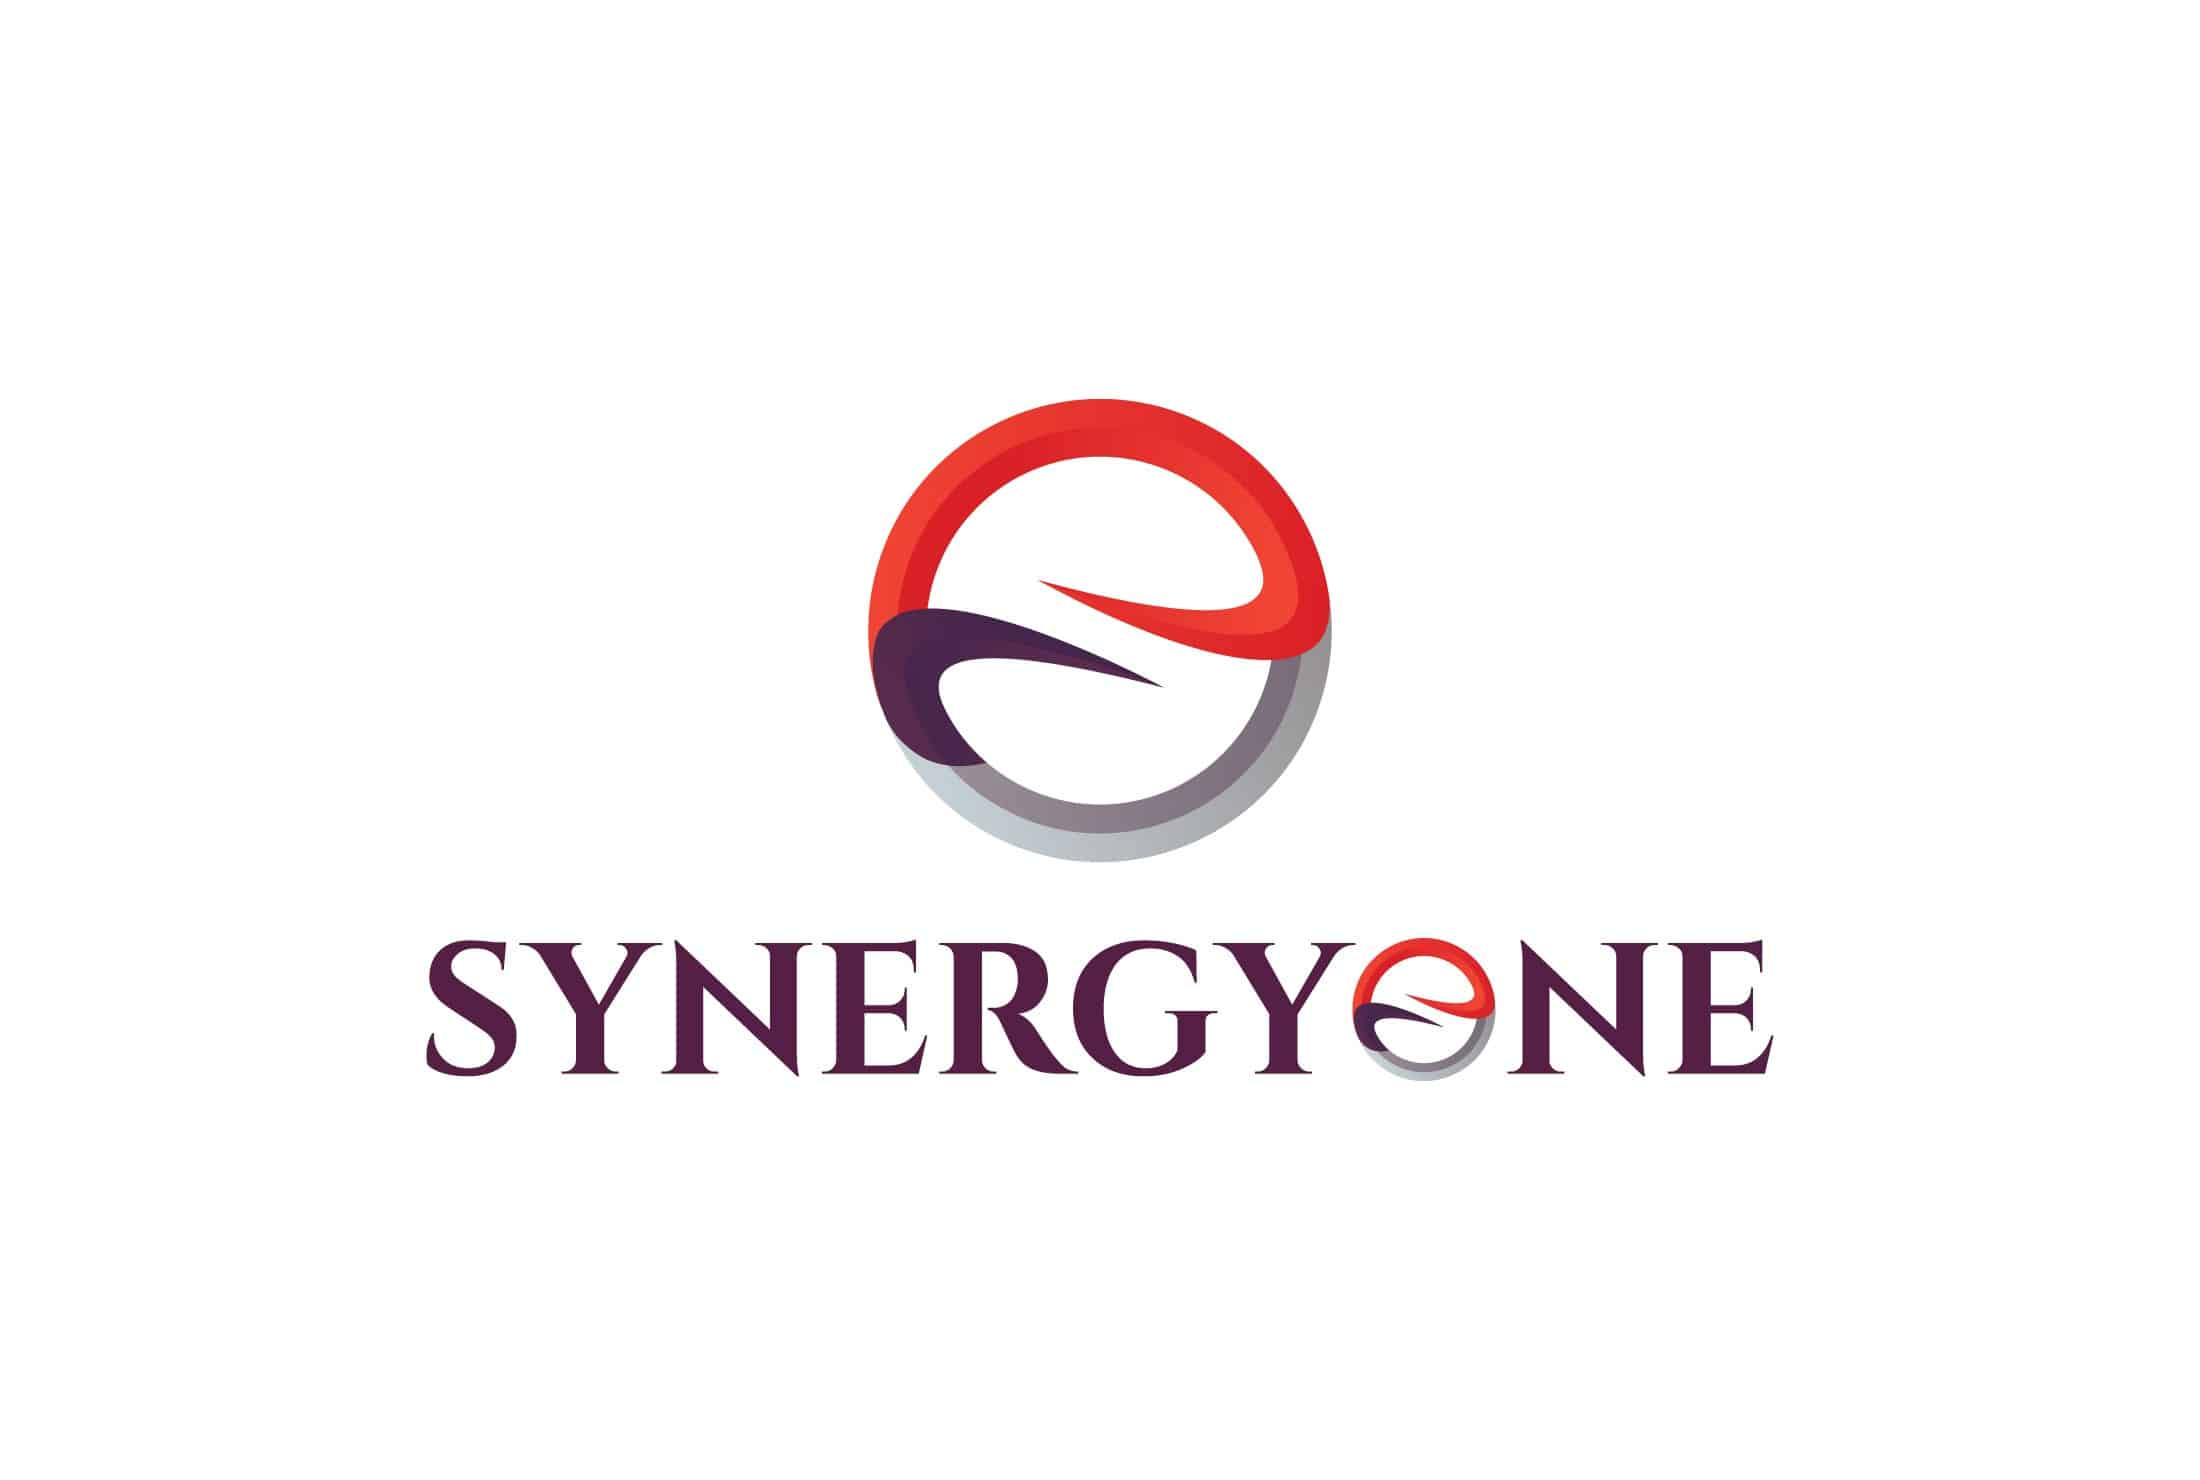 Home+-+SynergyOne+Consulting+Corporation